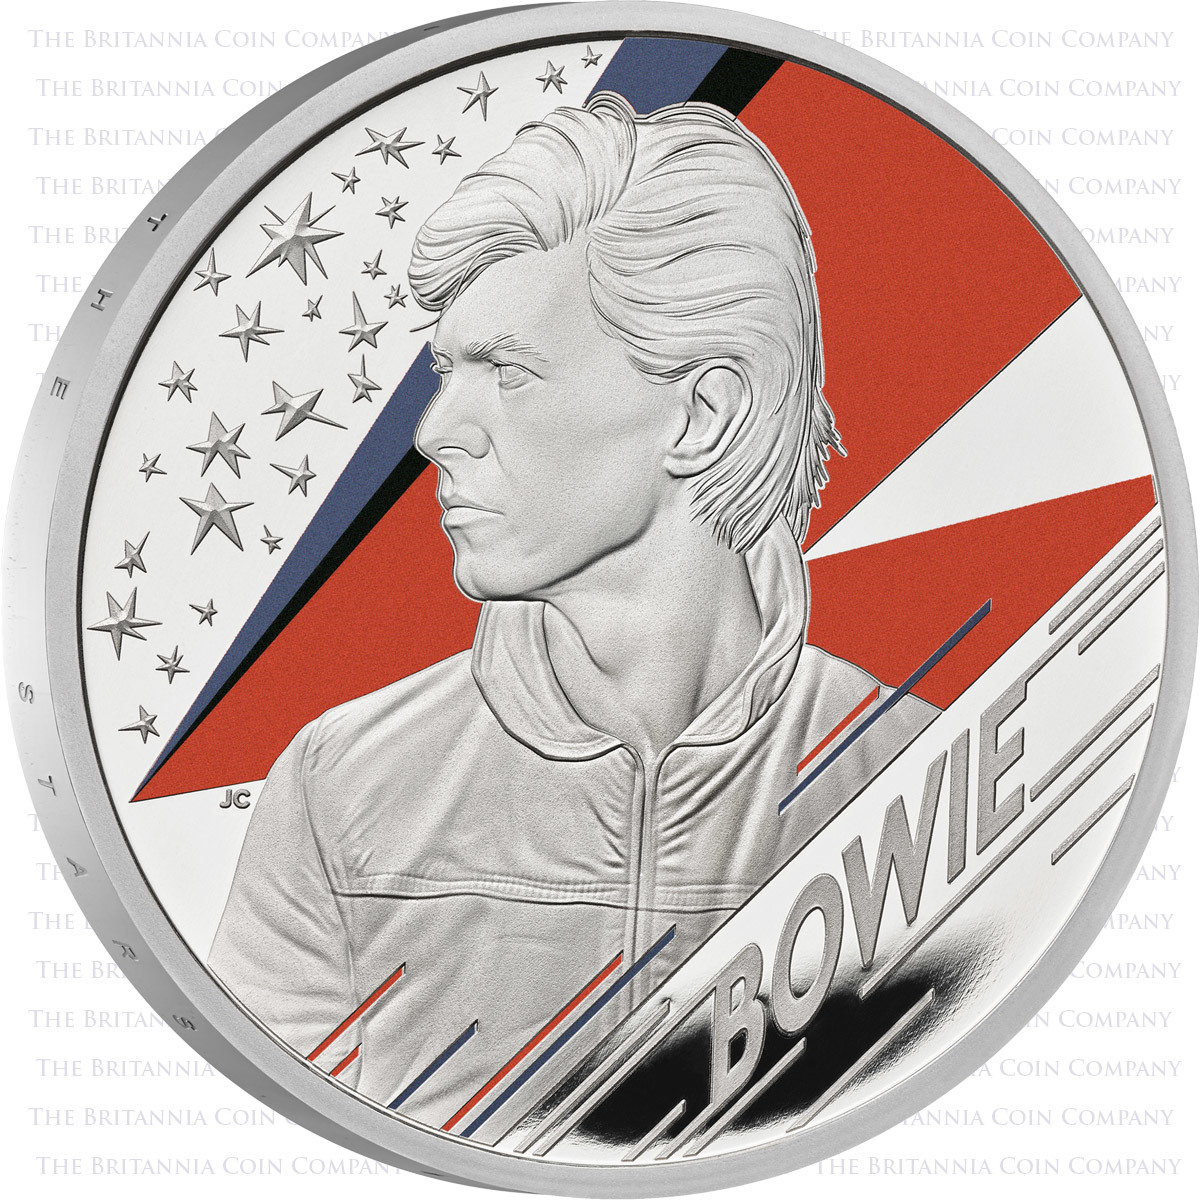 2020 David Bowie 1 Ounce Silver Proof